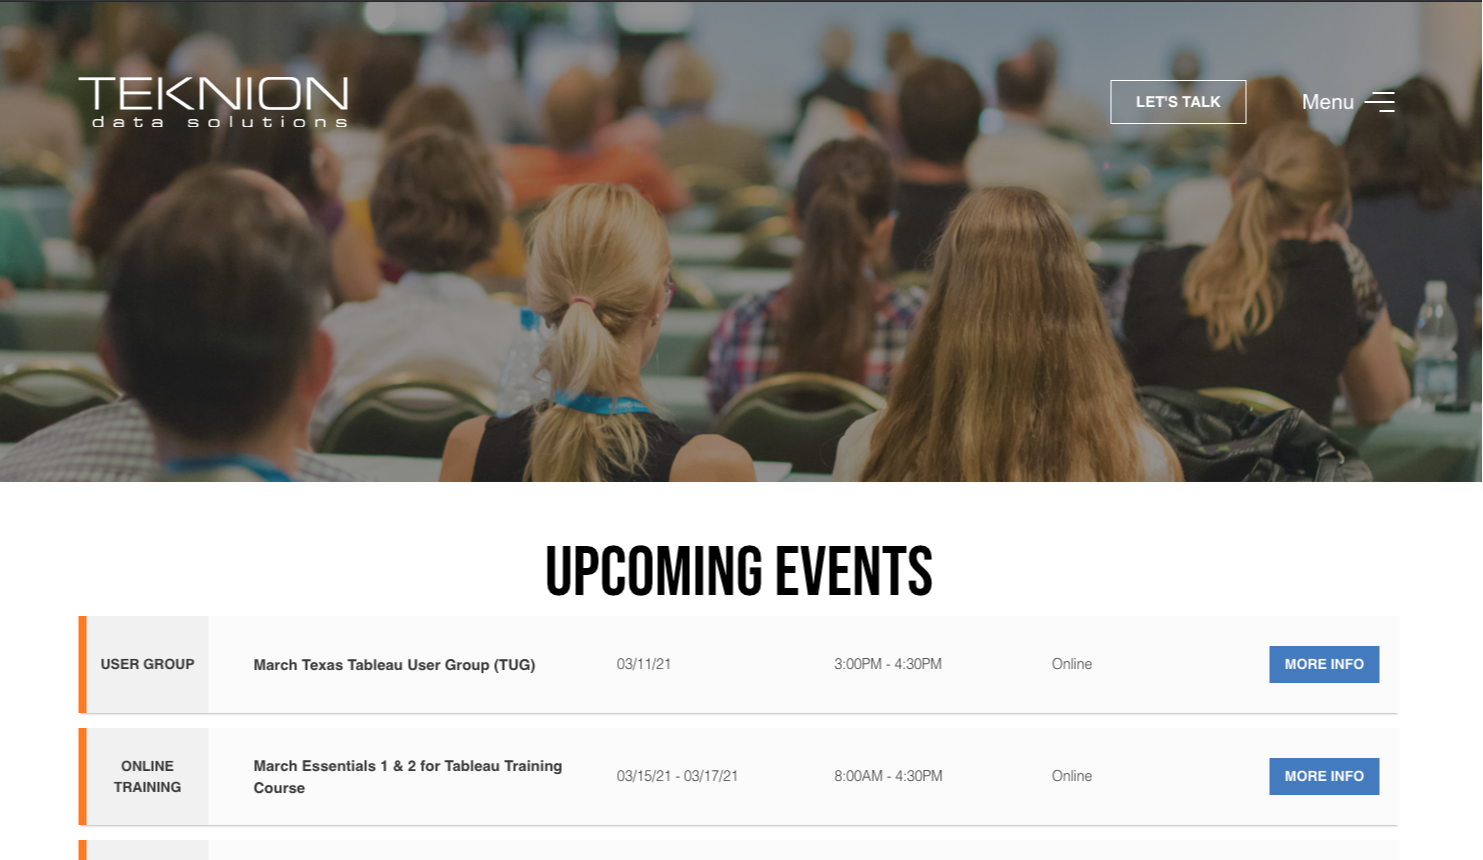 Upcoming Events Page